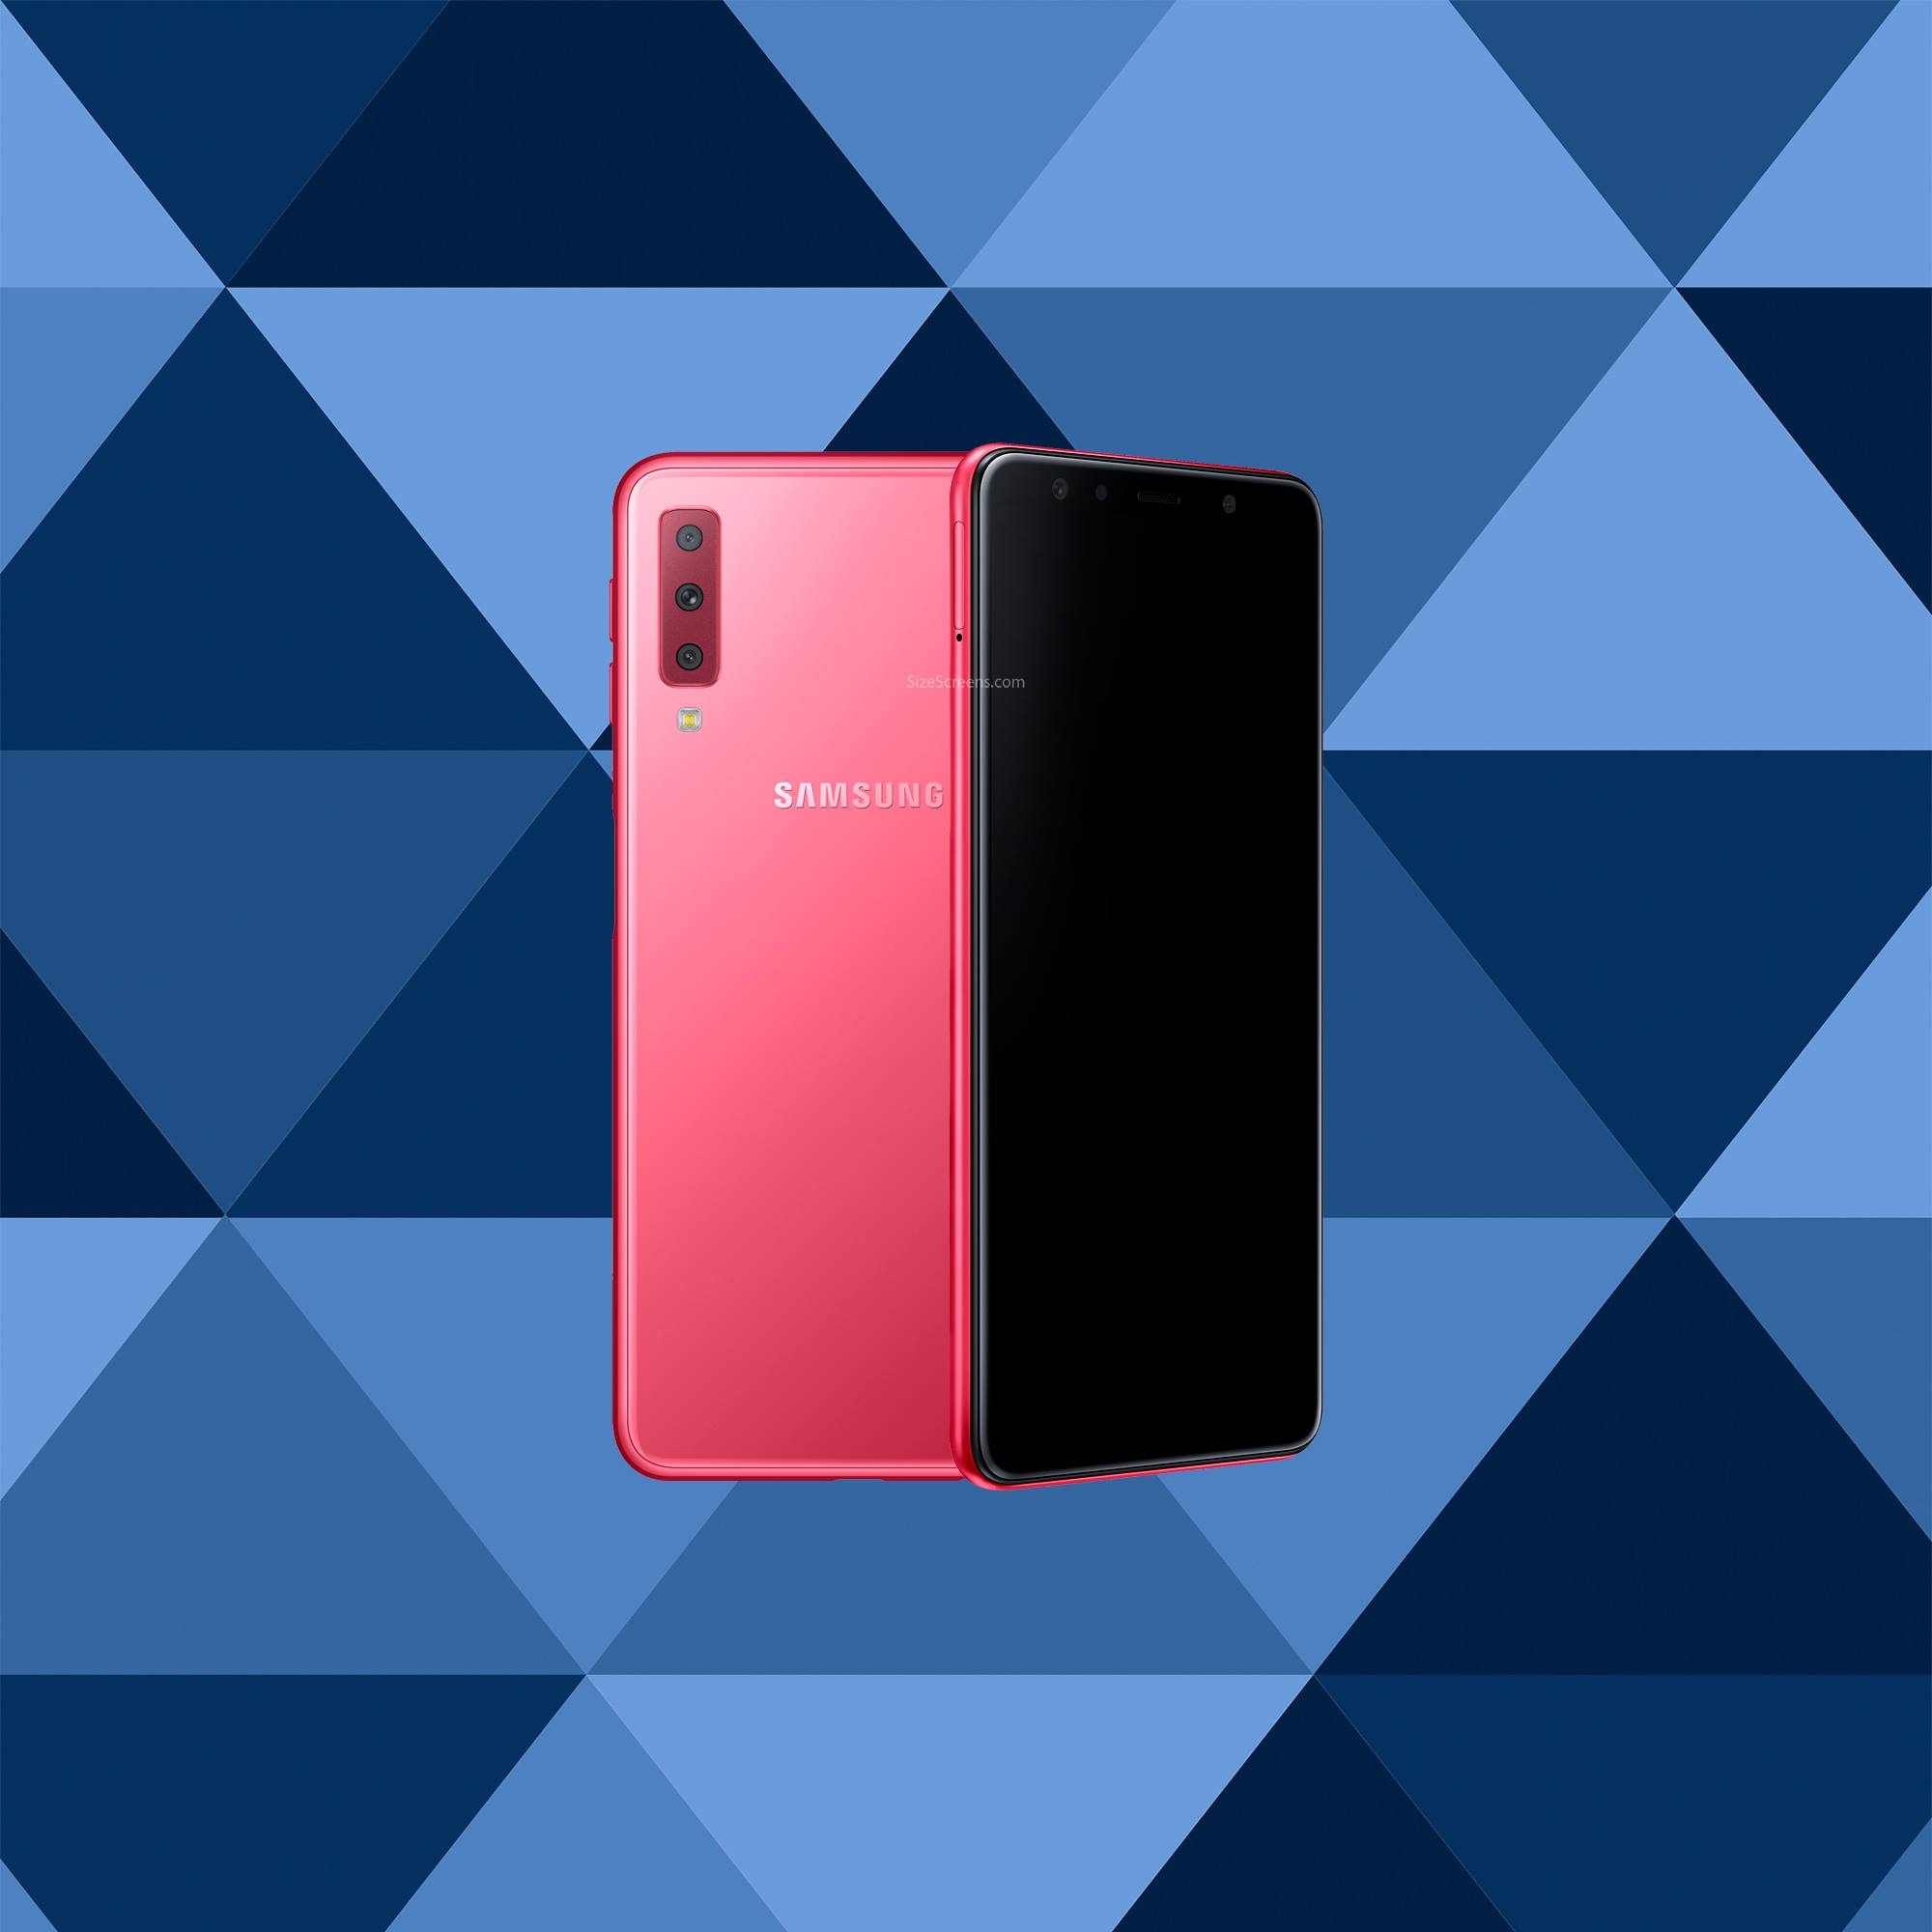 reputable site 12cef 48871 Samsung Galaxy A7 2018 Screen Specifications • SizeScreens.com